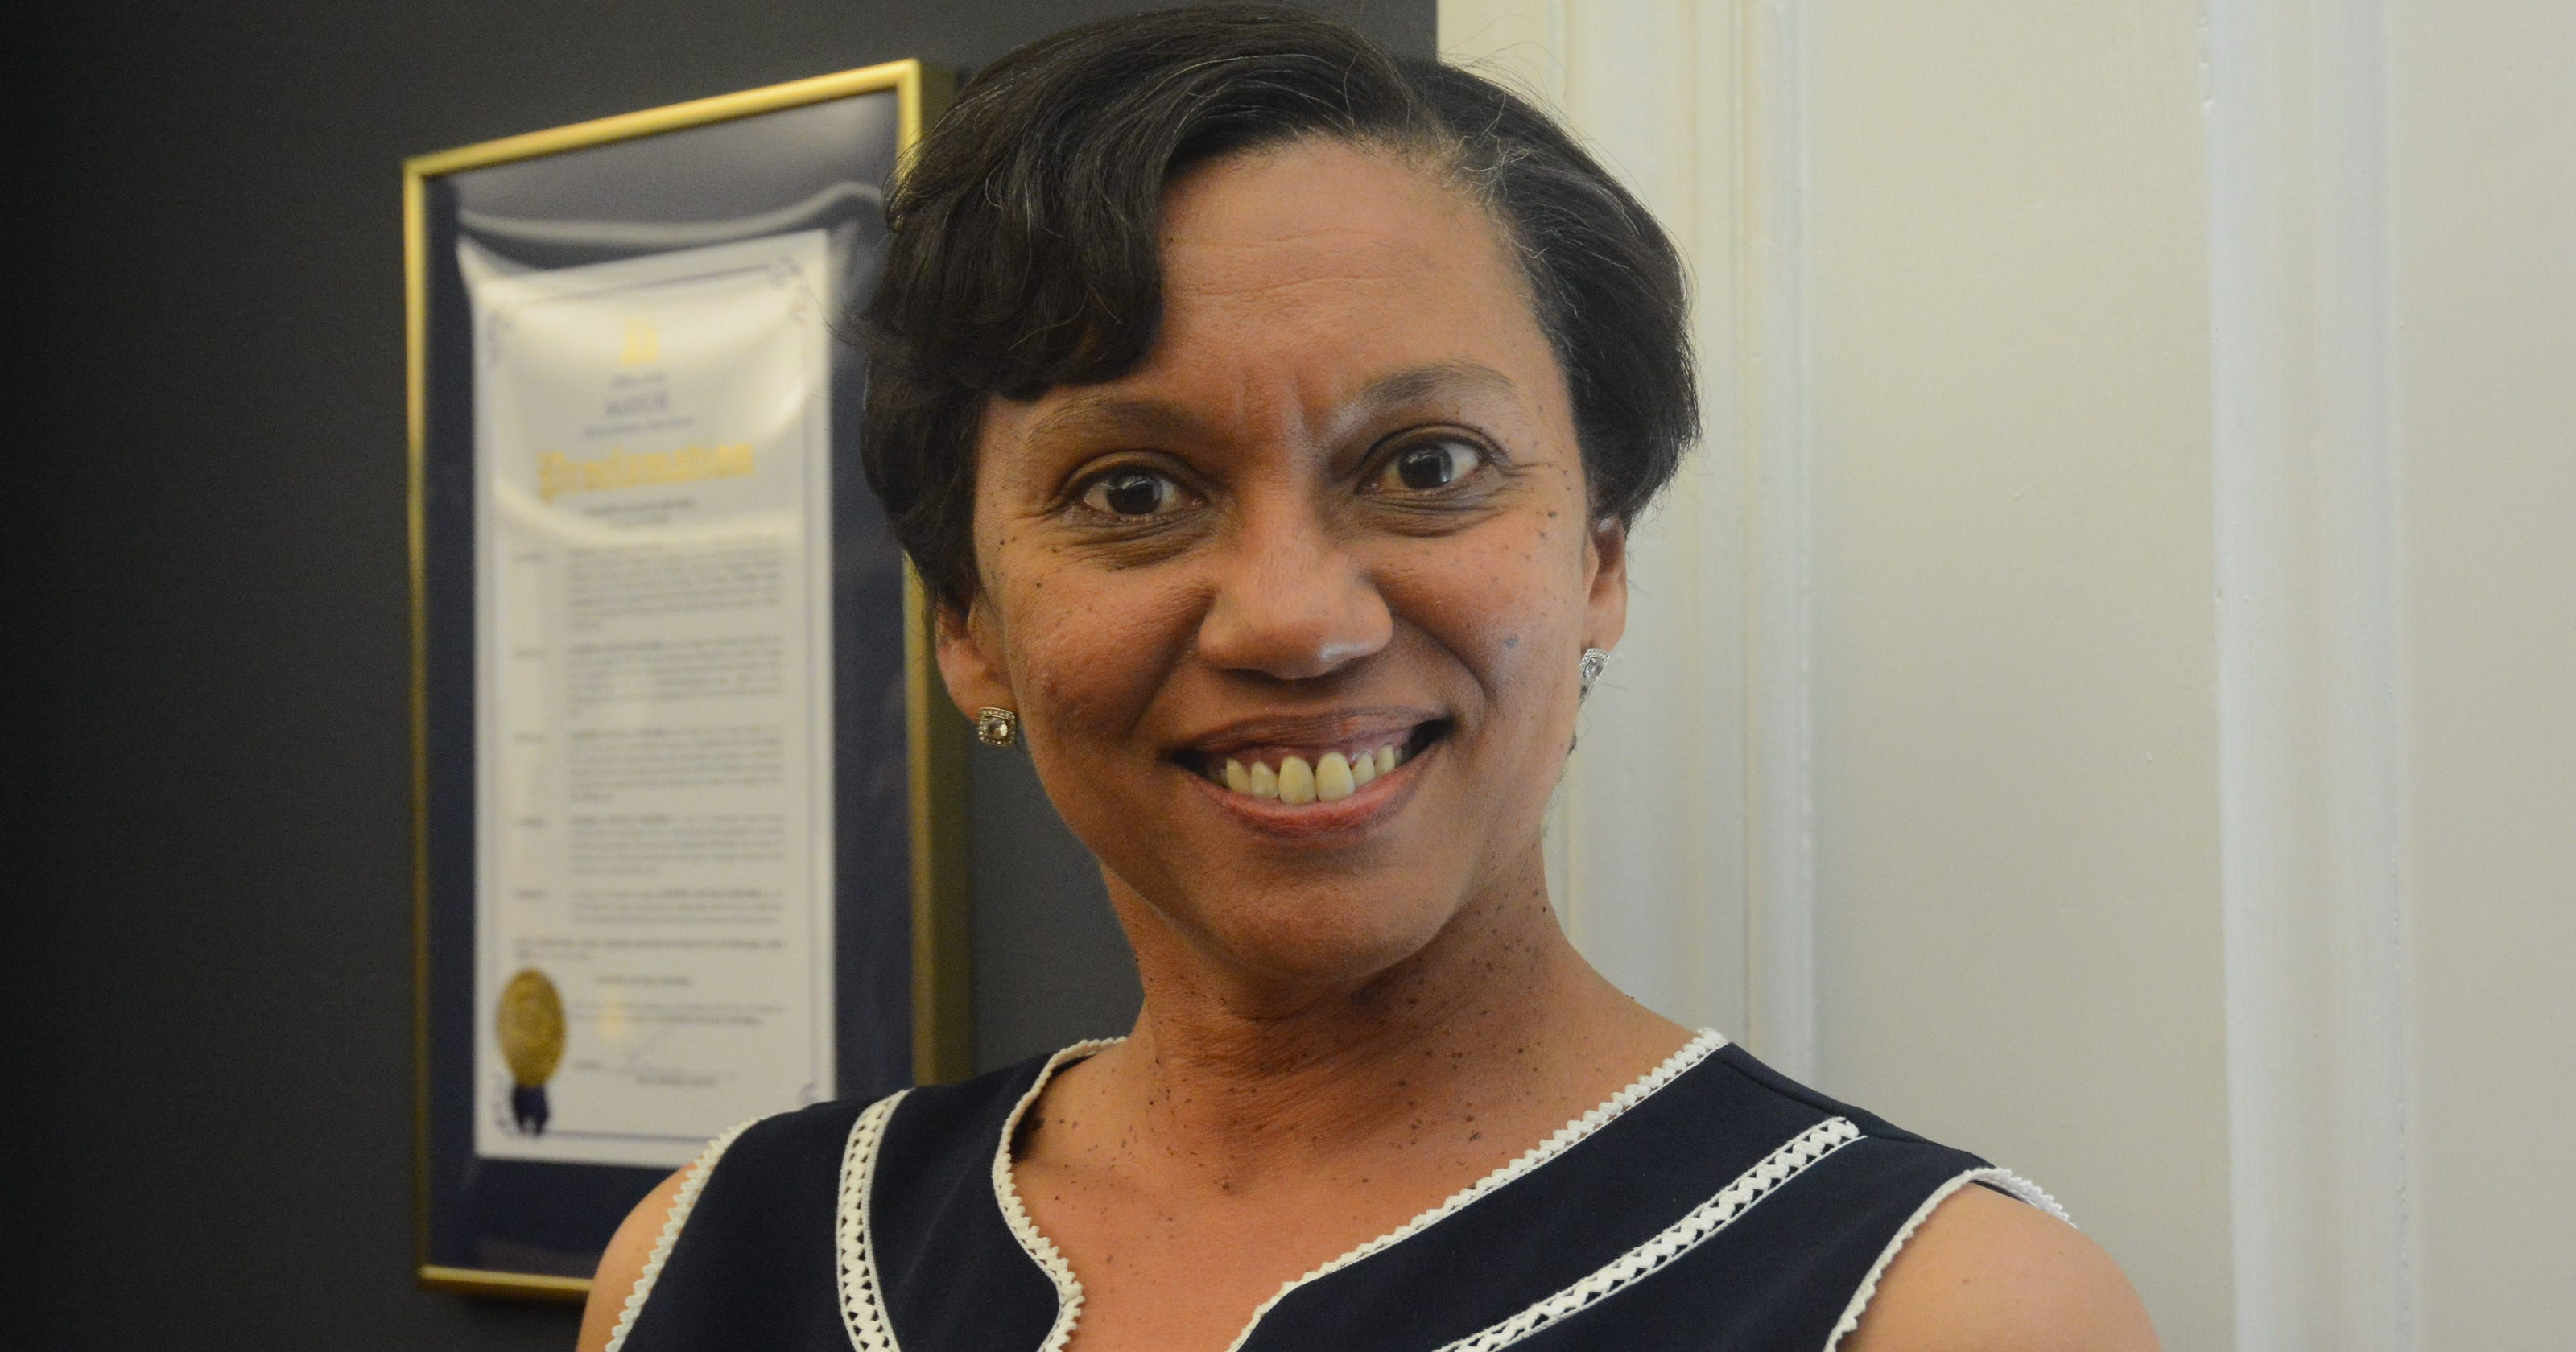 e2b40b81eefaa Jackson next challenge for Michelle Thomas, who helped save Newark